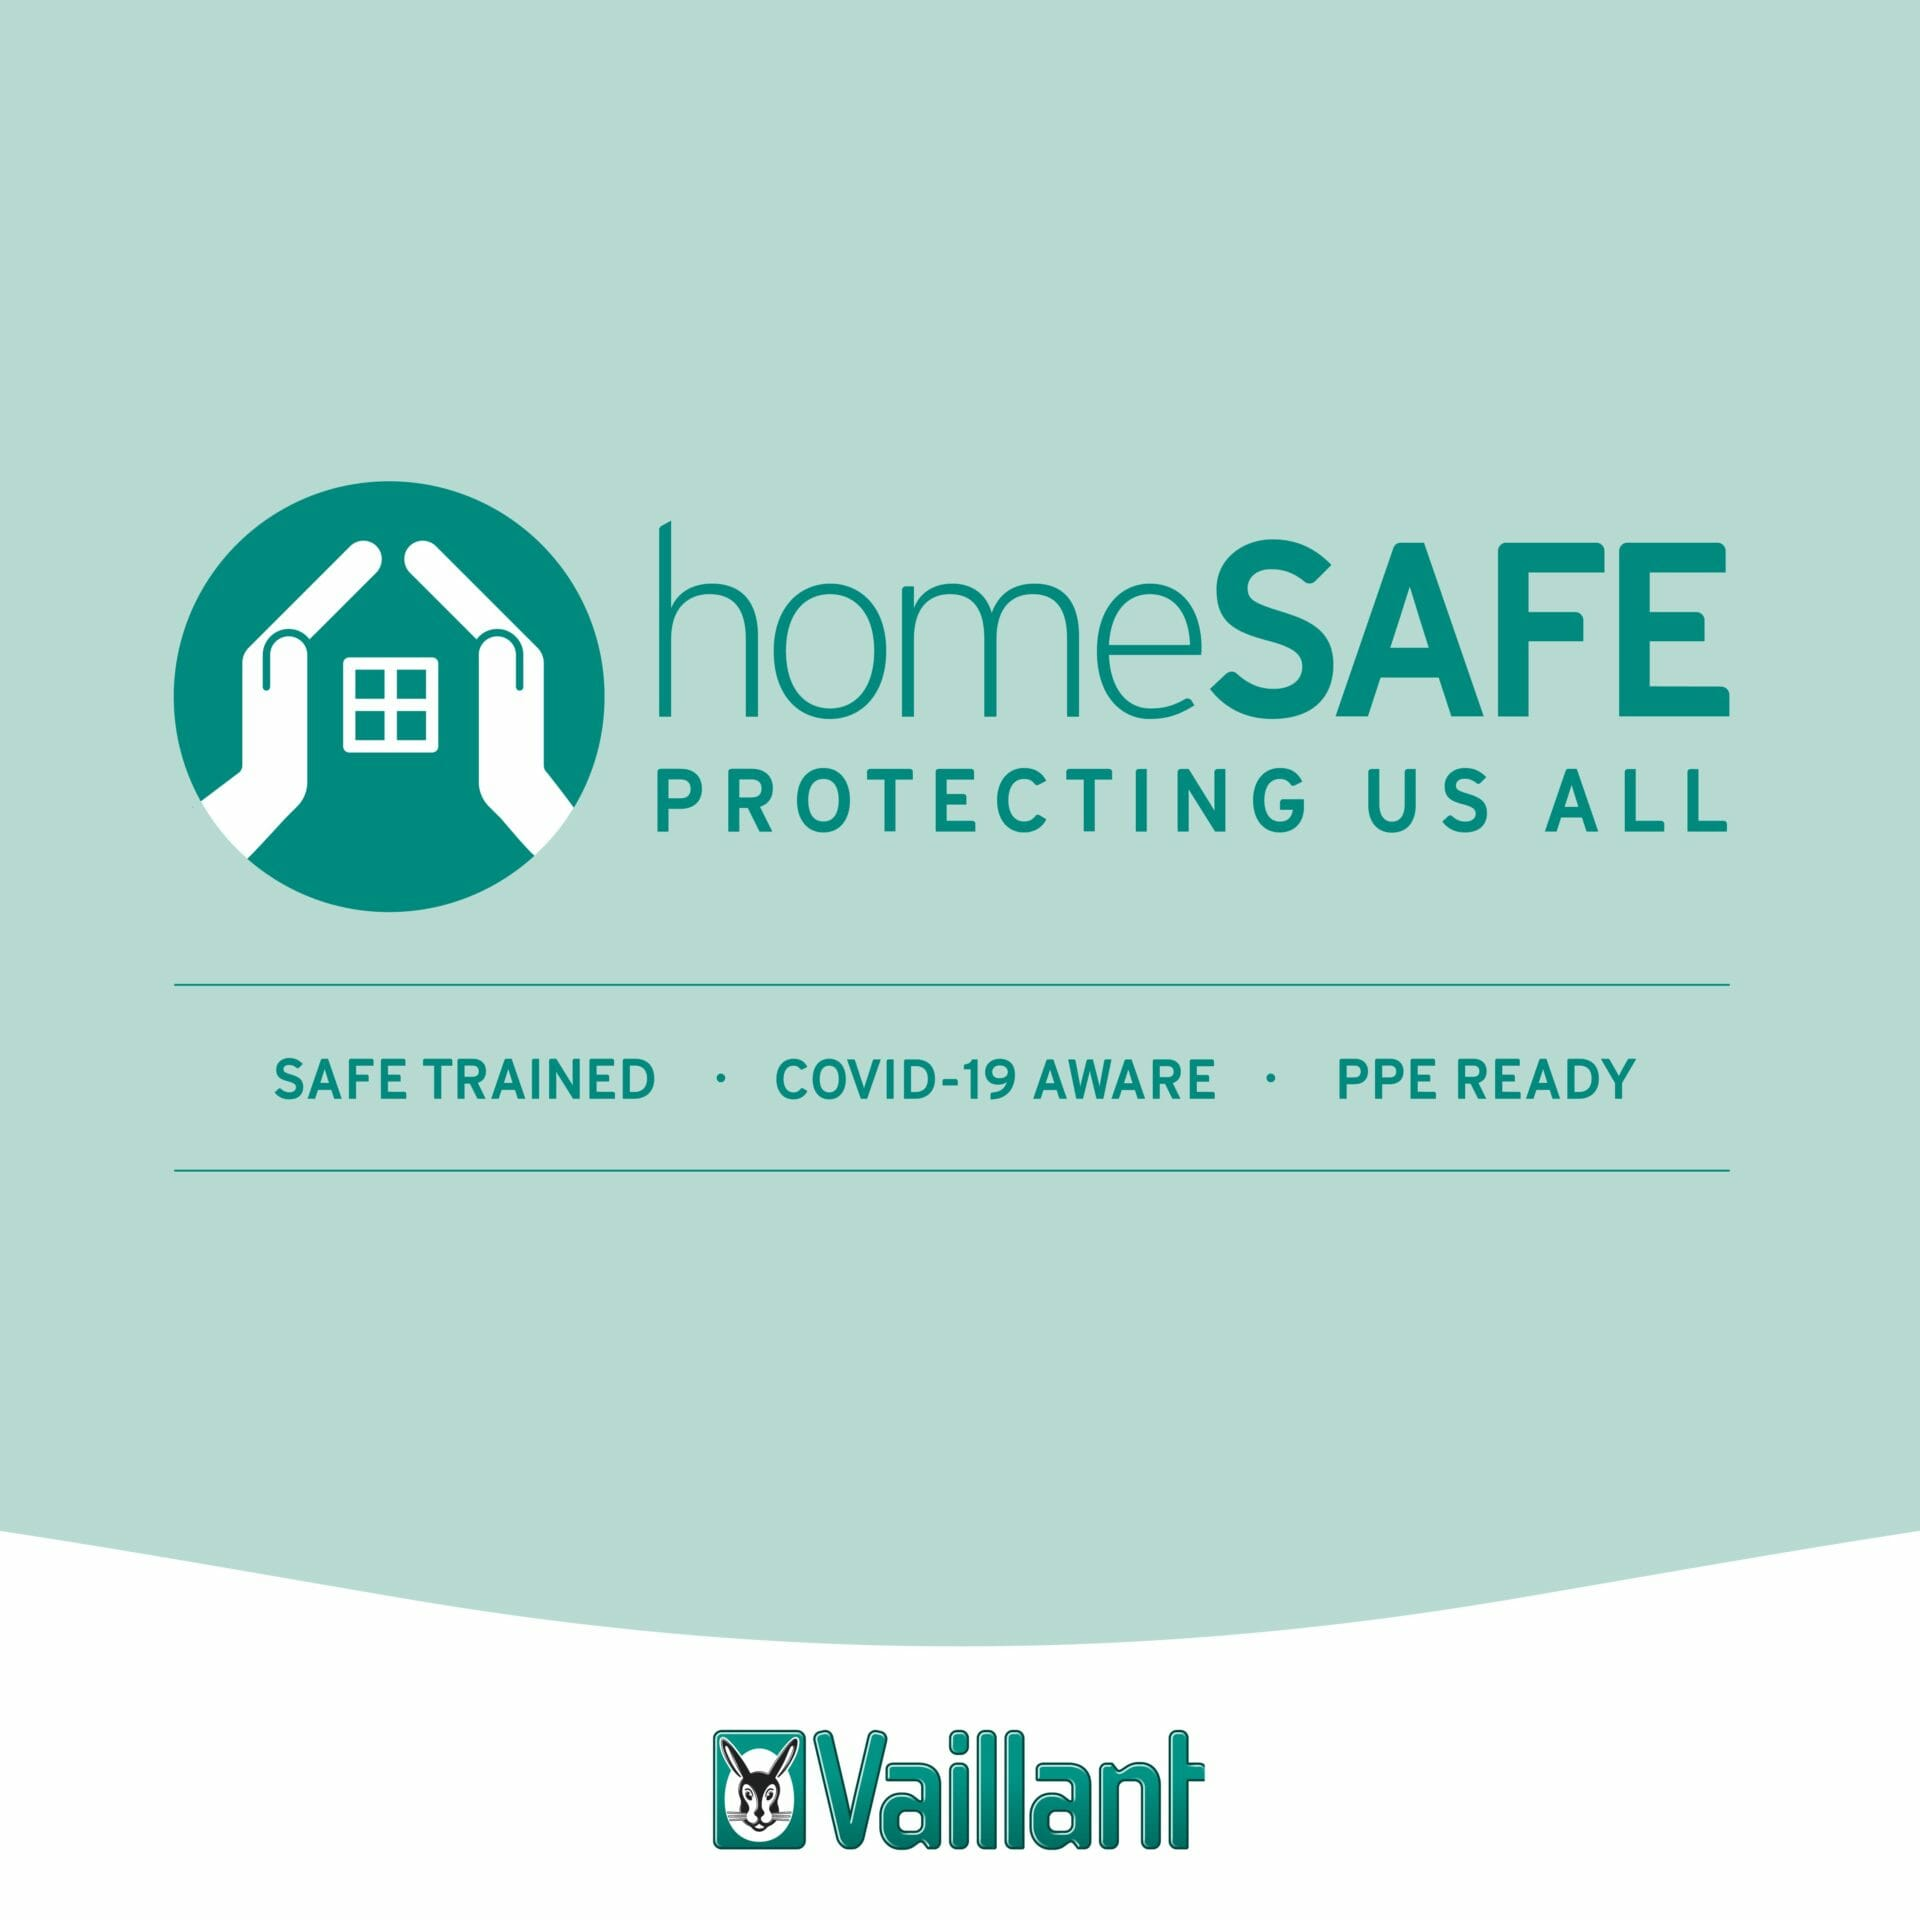 vaillant homeSAFE installer